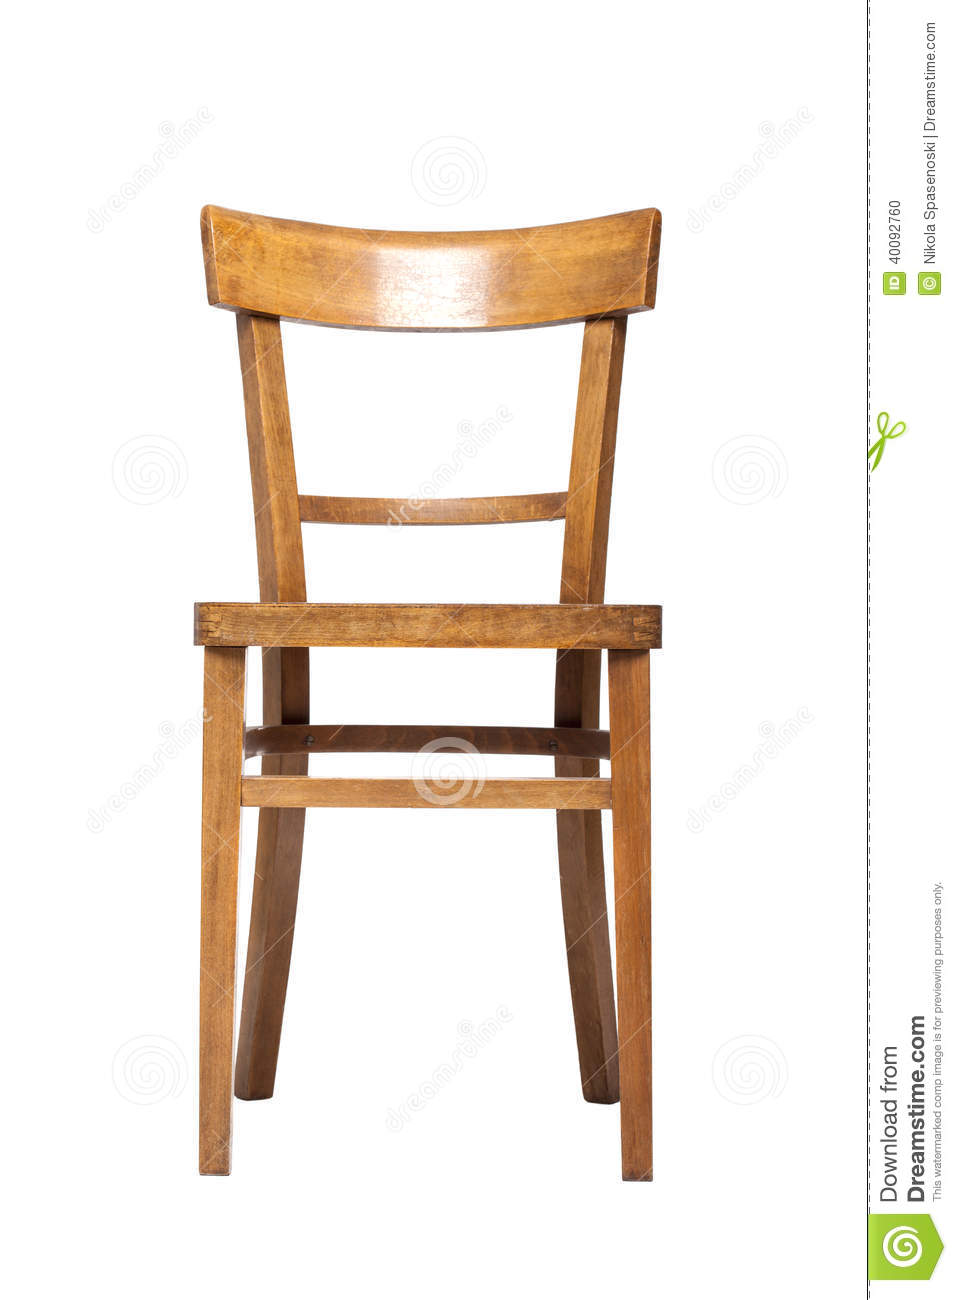 Stock Sedie Legno Usate.Wooden Chair Stock Photo Image Of Furniture Classic 40092760